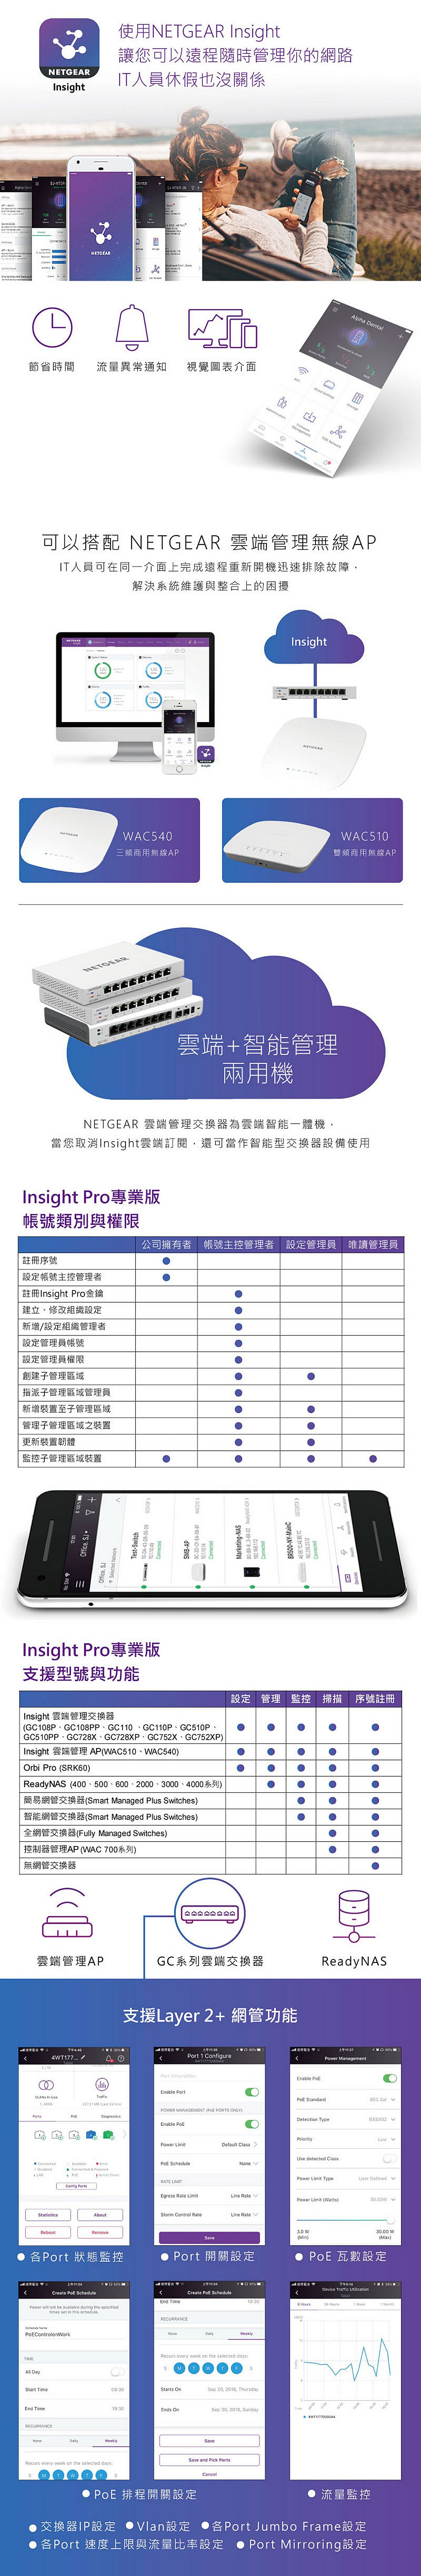 NETGEAR Insight GC108P 智能雲 PoE+ 交換機 (64W)